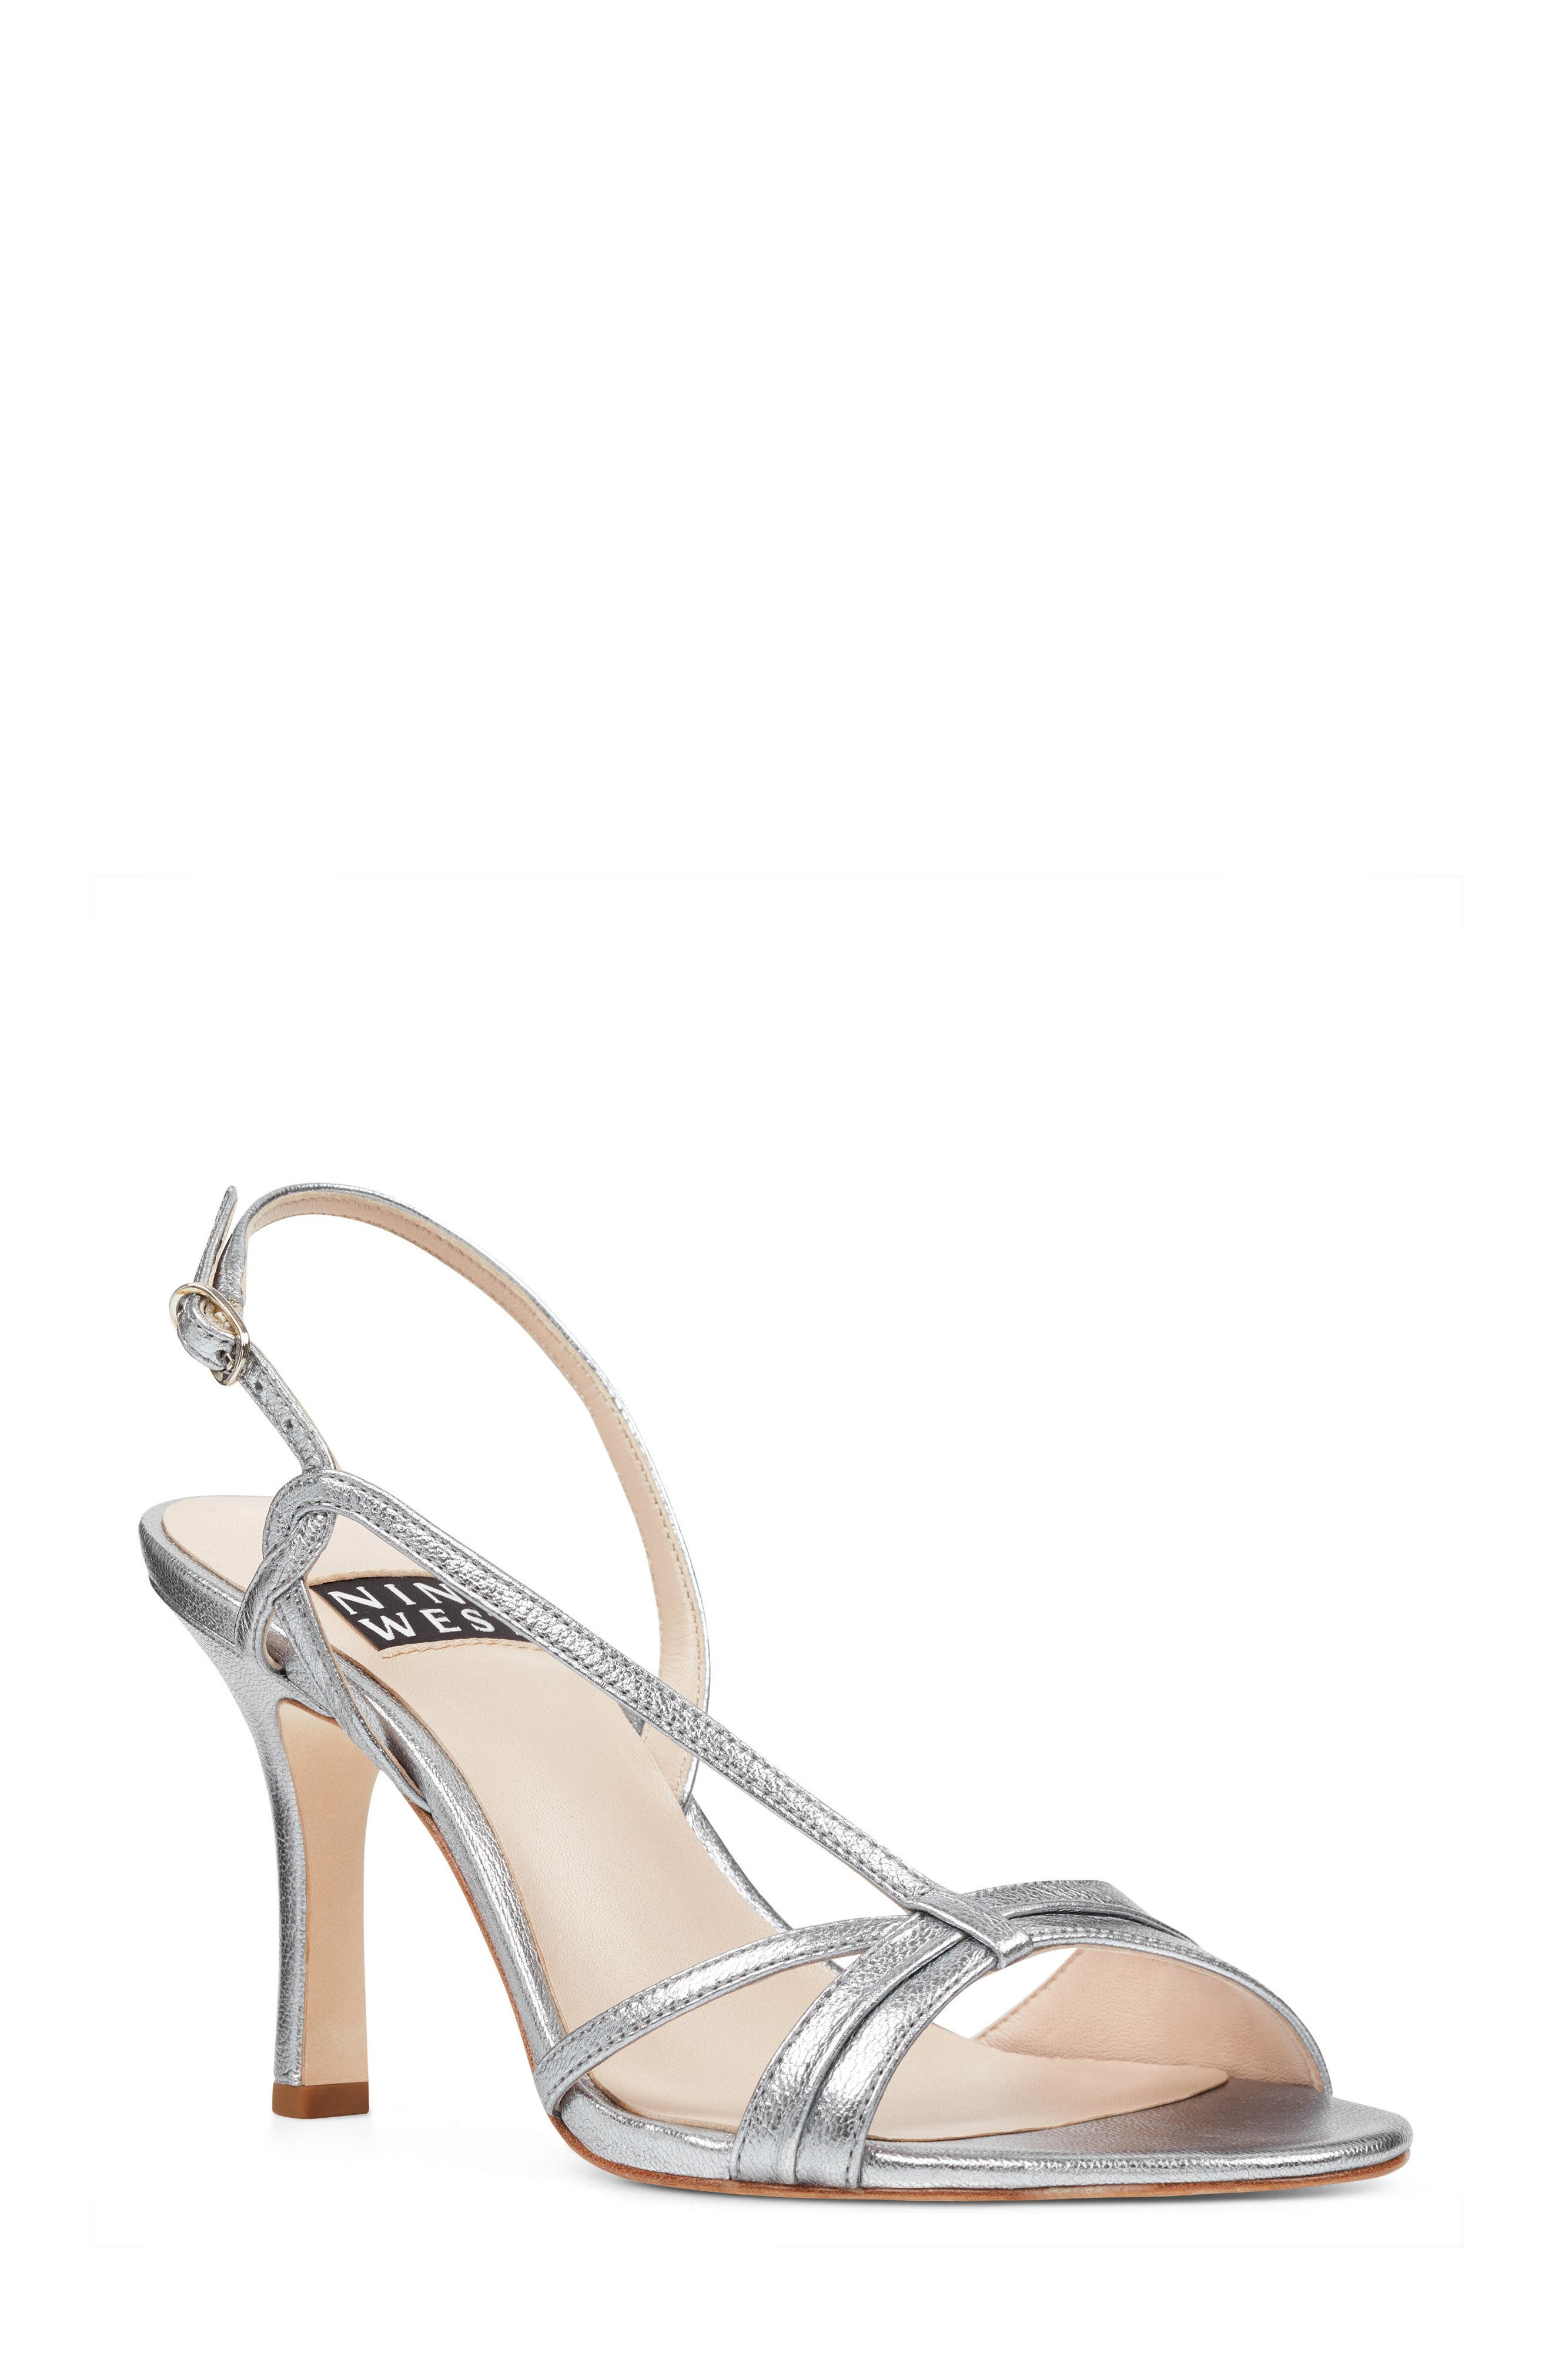 Accolia - 40th Anniversary Capsule Collection Sandal,                         Main,                         color, SILVER LEATHER